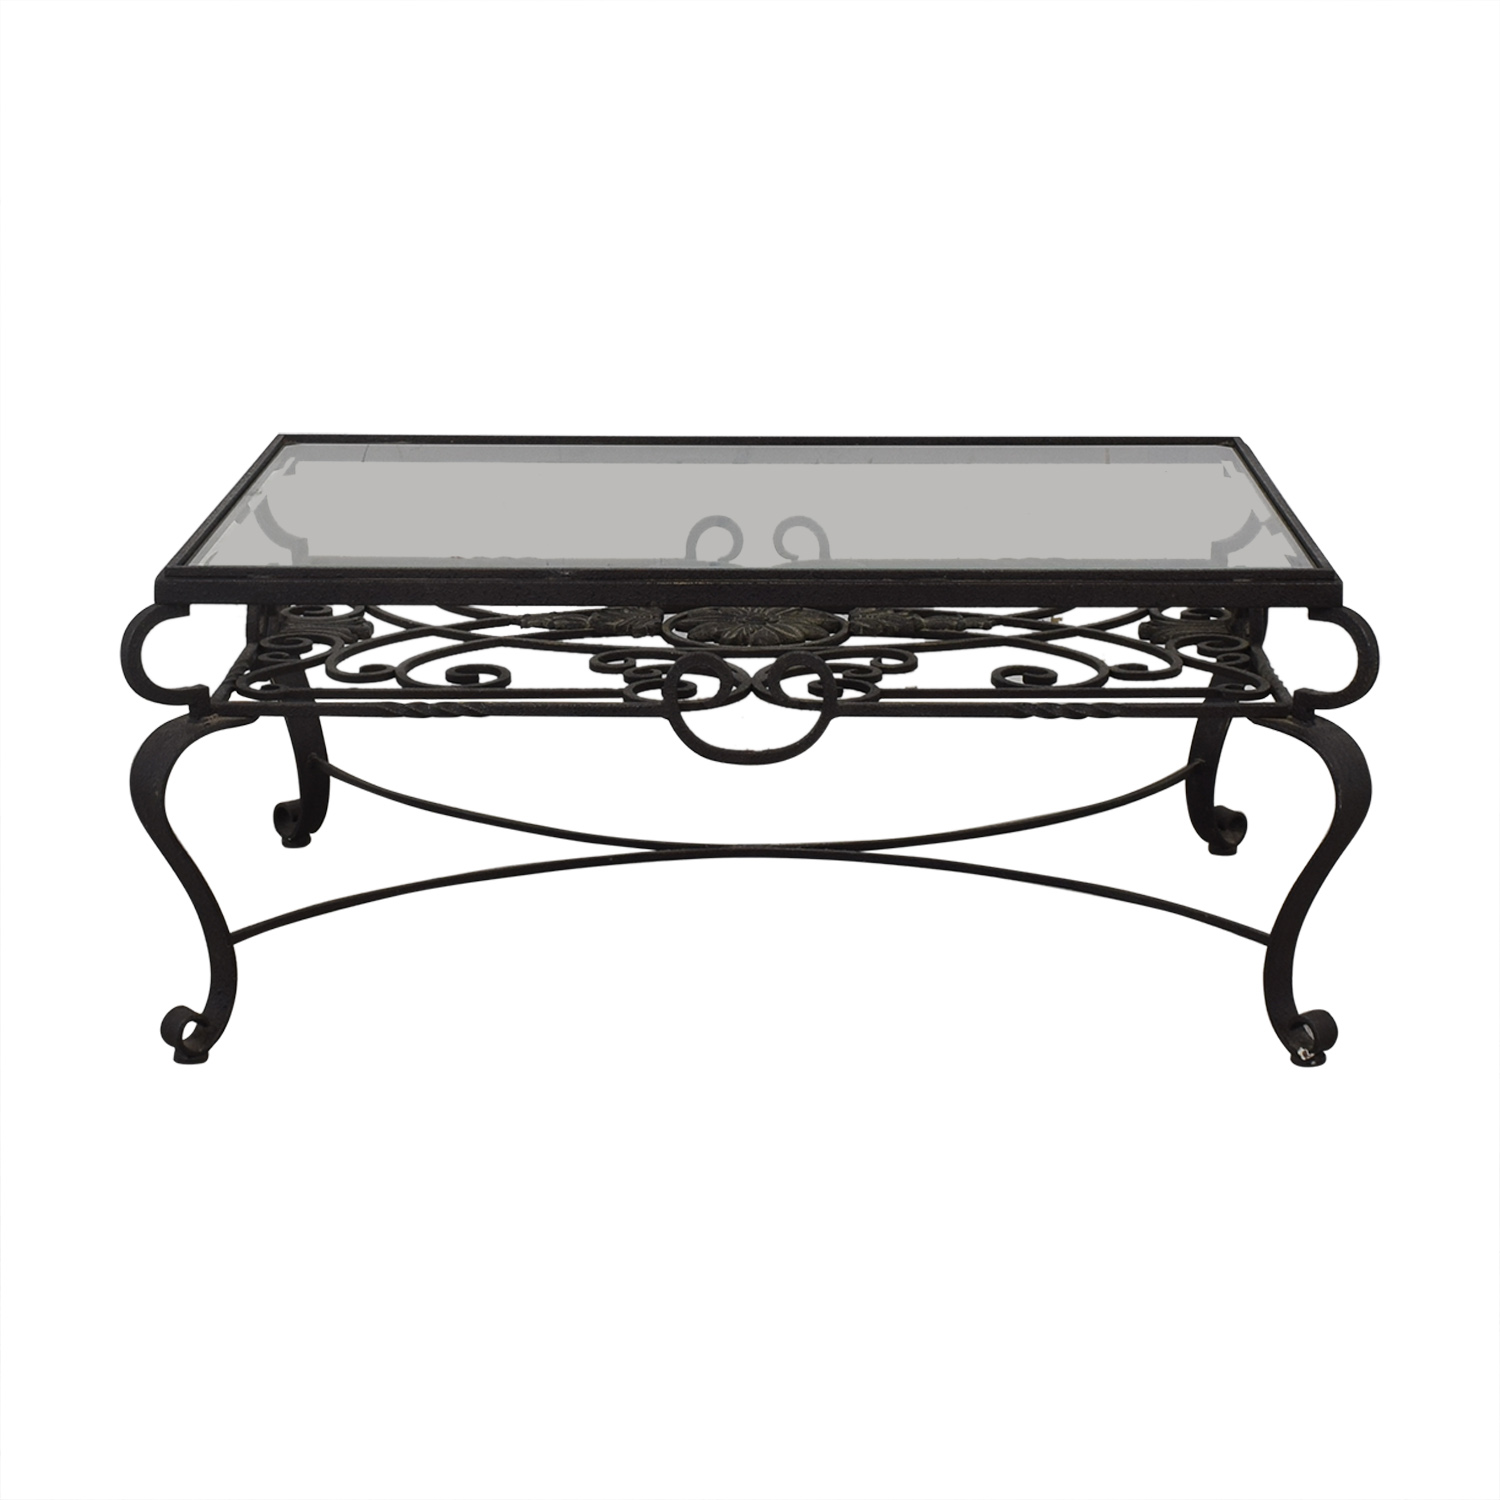 Domain Domain Coffee Table for sale